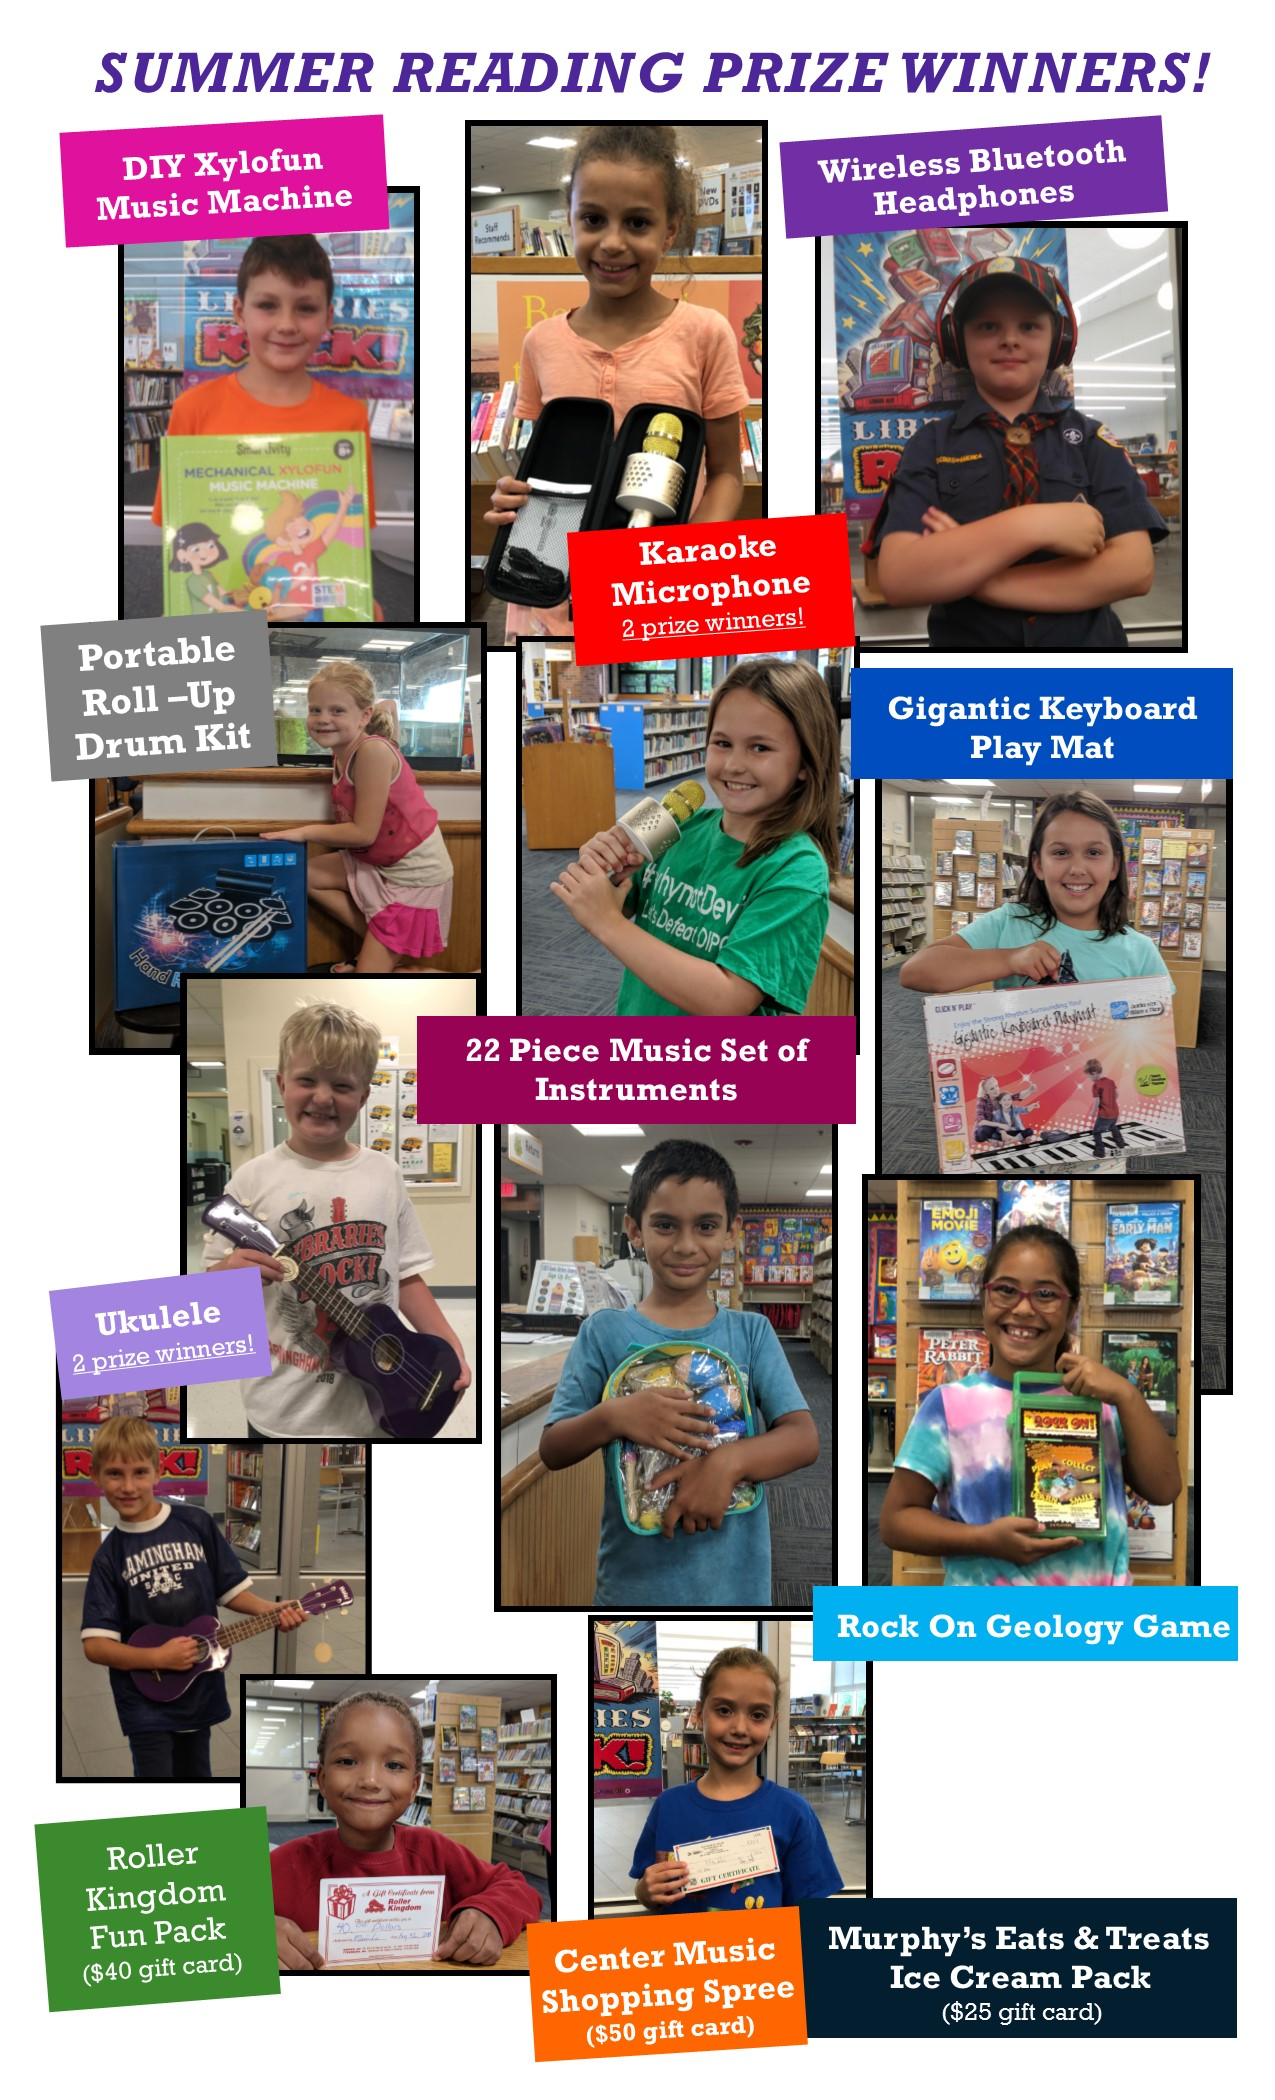 photo collage of kids posing with their summer reading prizes